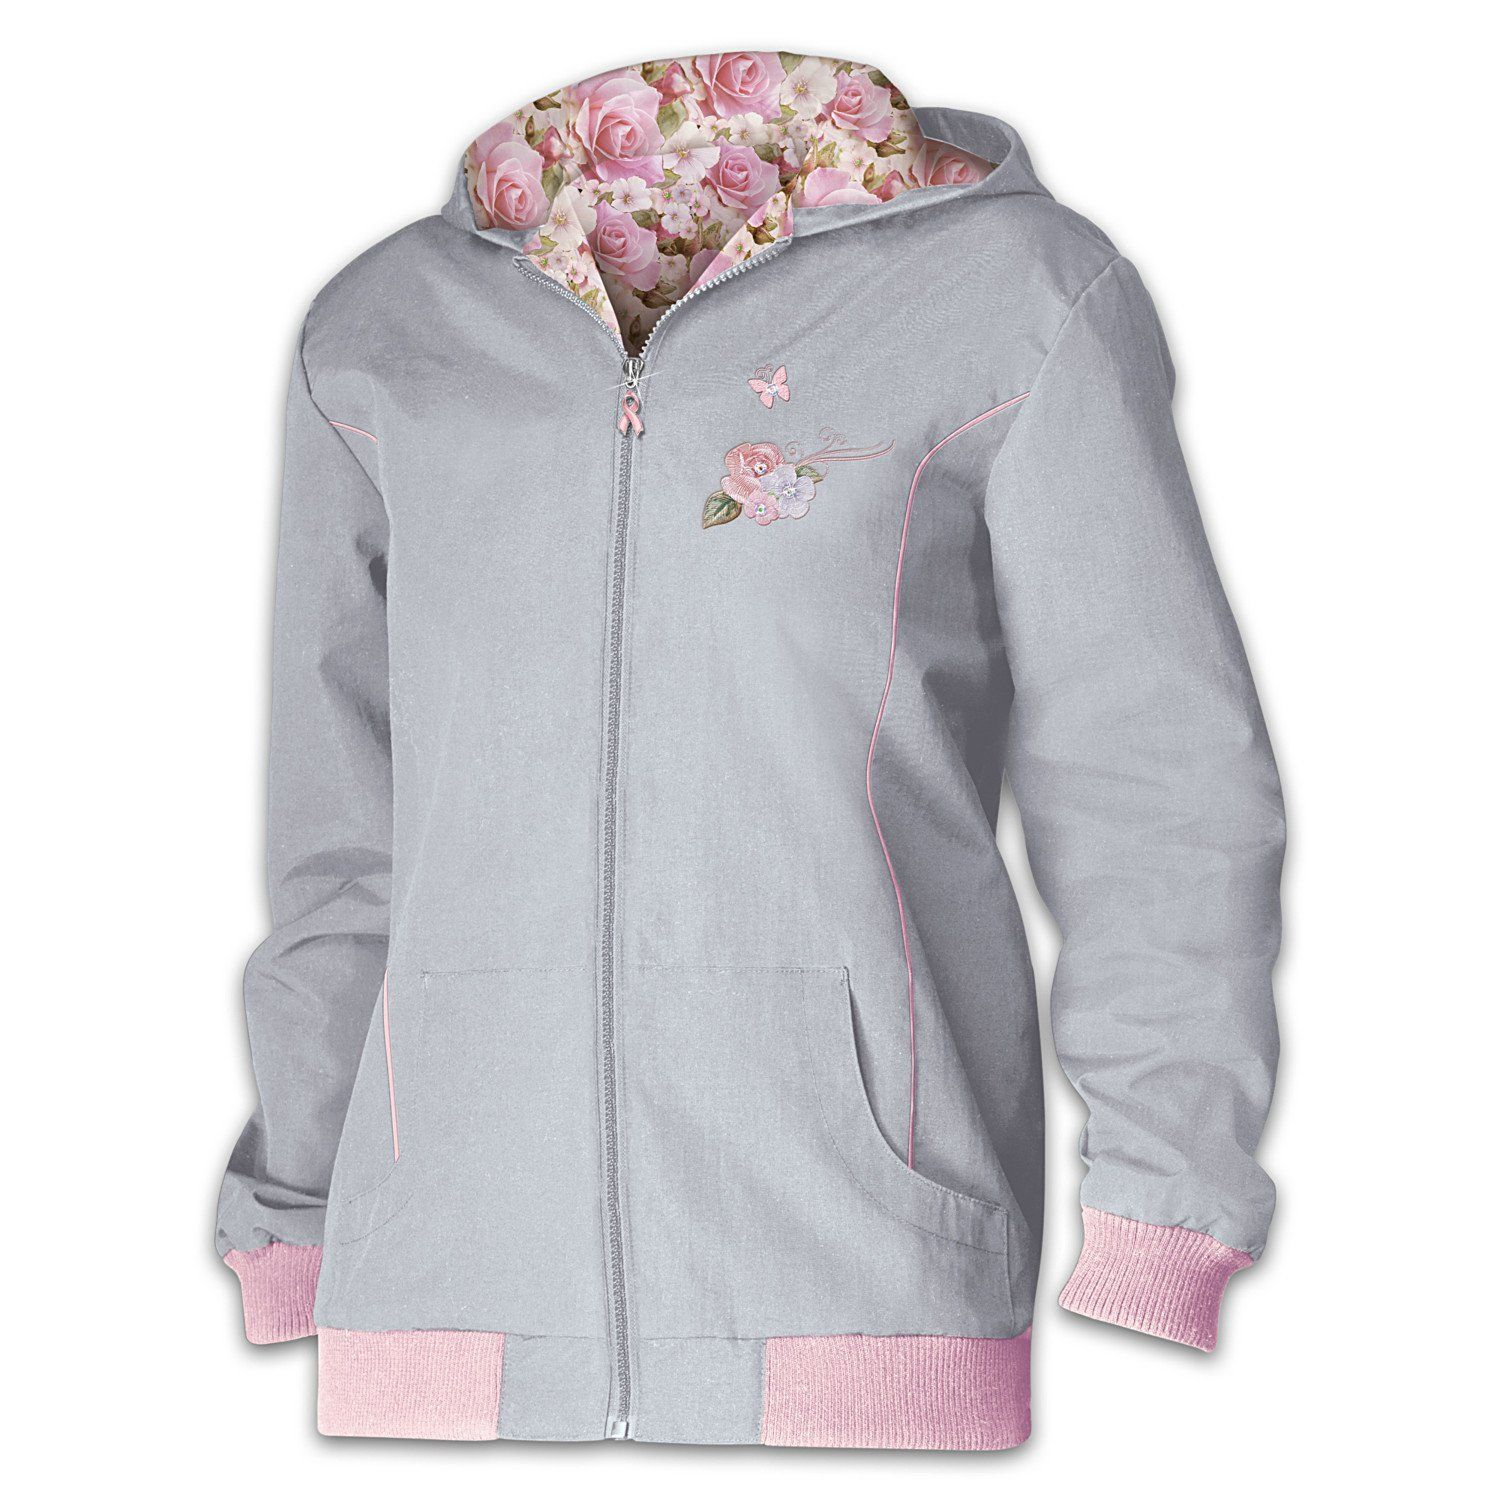 Blossoming Hope Lightweight Women's Embroidered Jacket by The Bradford Exchange >>> This is an Amazon Affiliate link. Click image for more details.